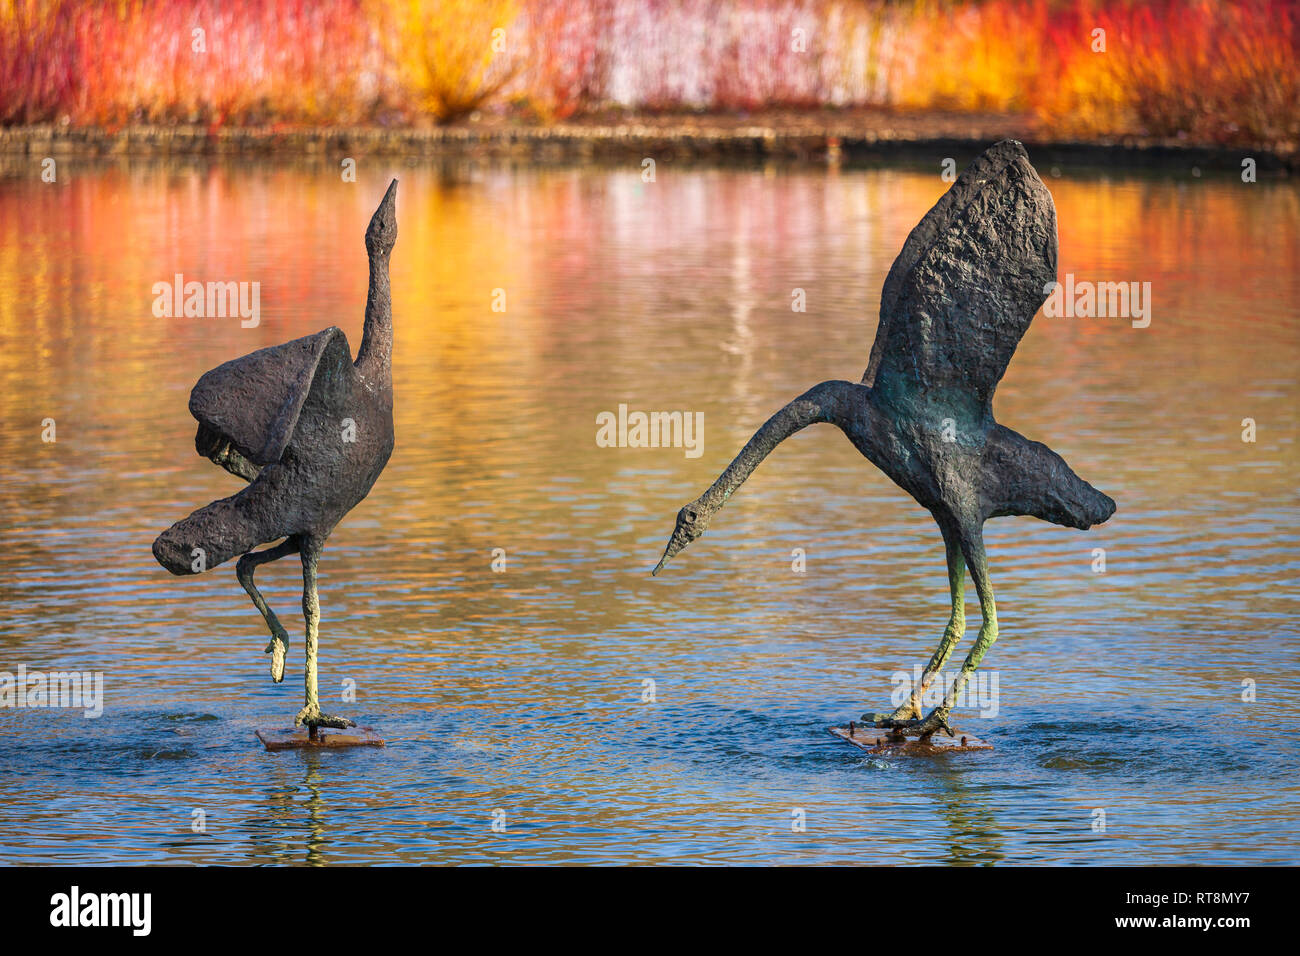 Courting Cranes by Gail Runyon Perry at Wisley RHS Gardens, illuminated by colourful Dogwood. - Stock Image